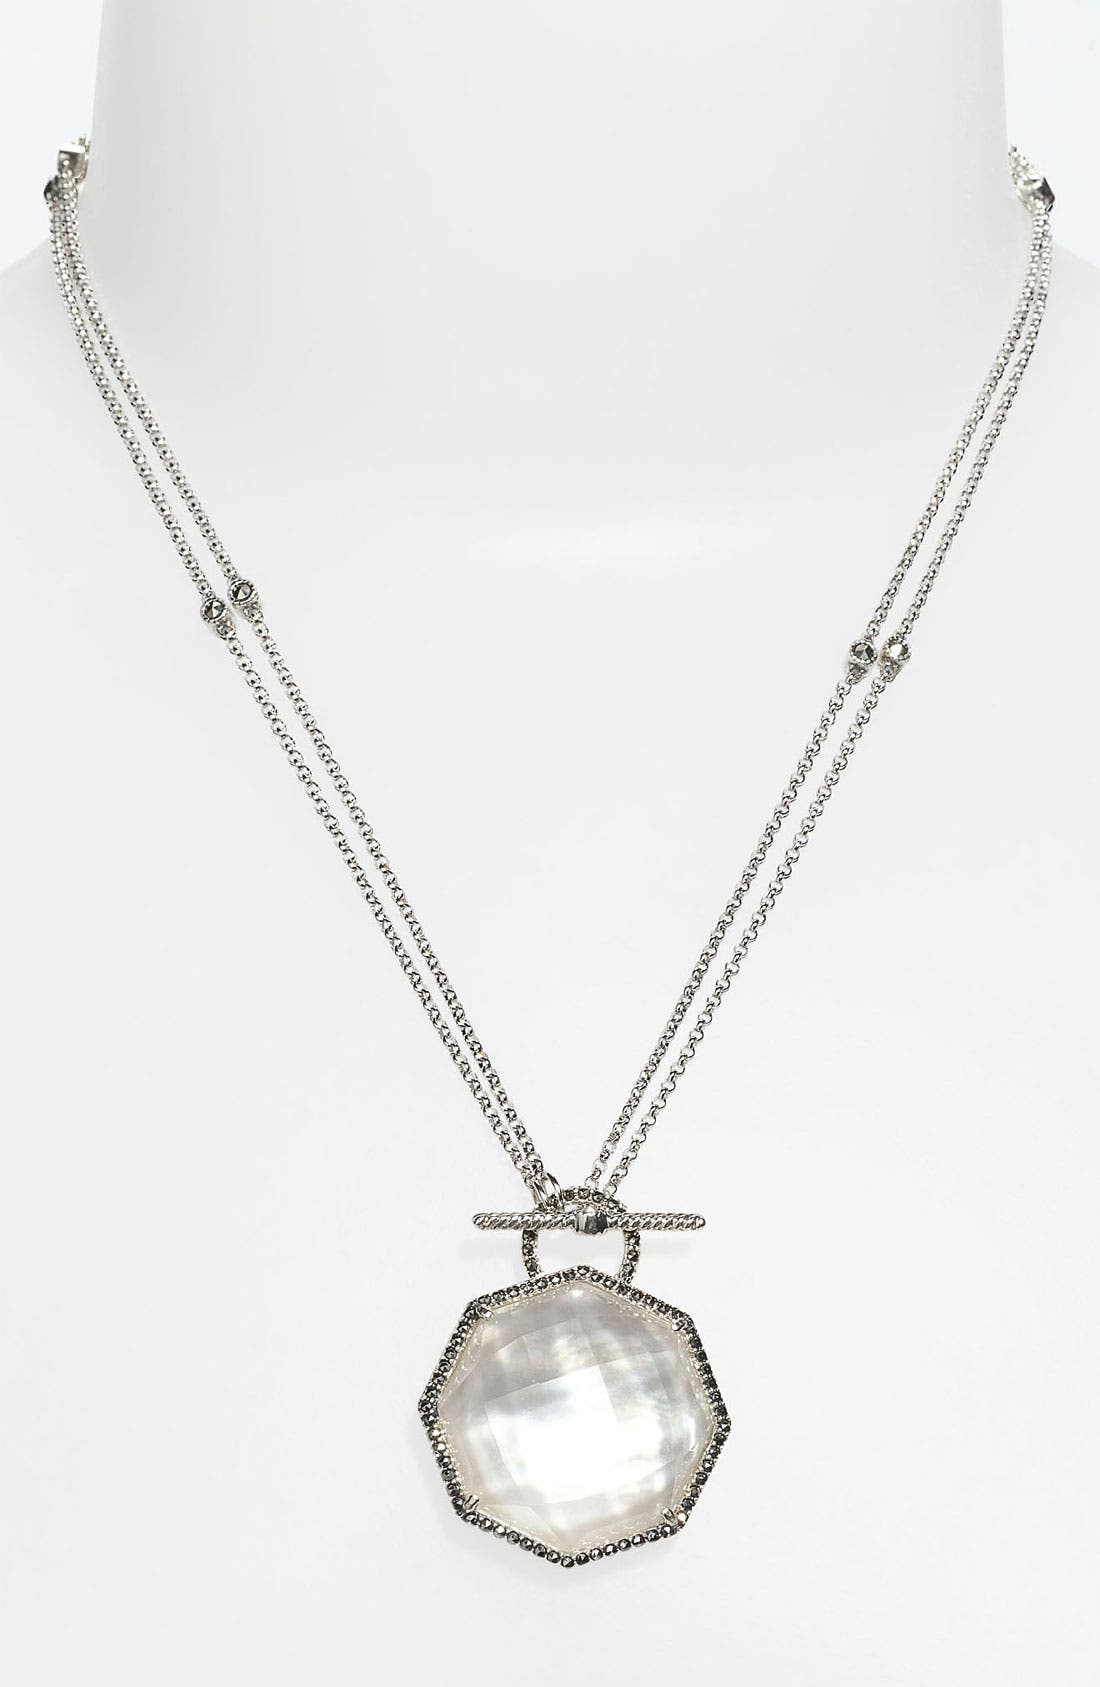 Alternate Image 1 Selected - Judith Jack 'Maldives' Convertible Pendant Necklace (Online Only)